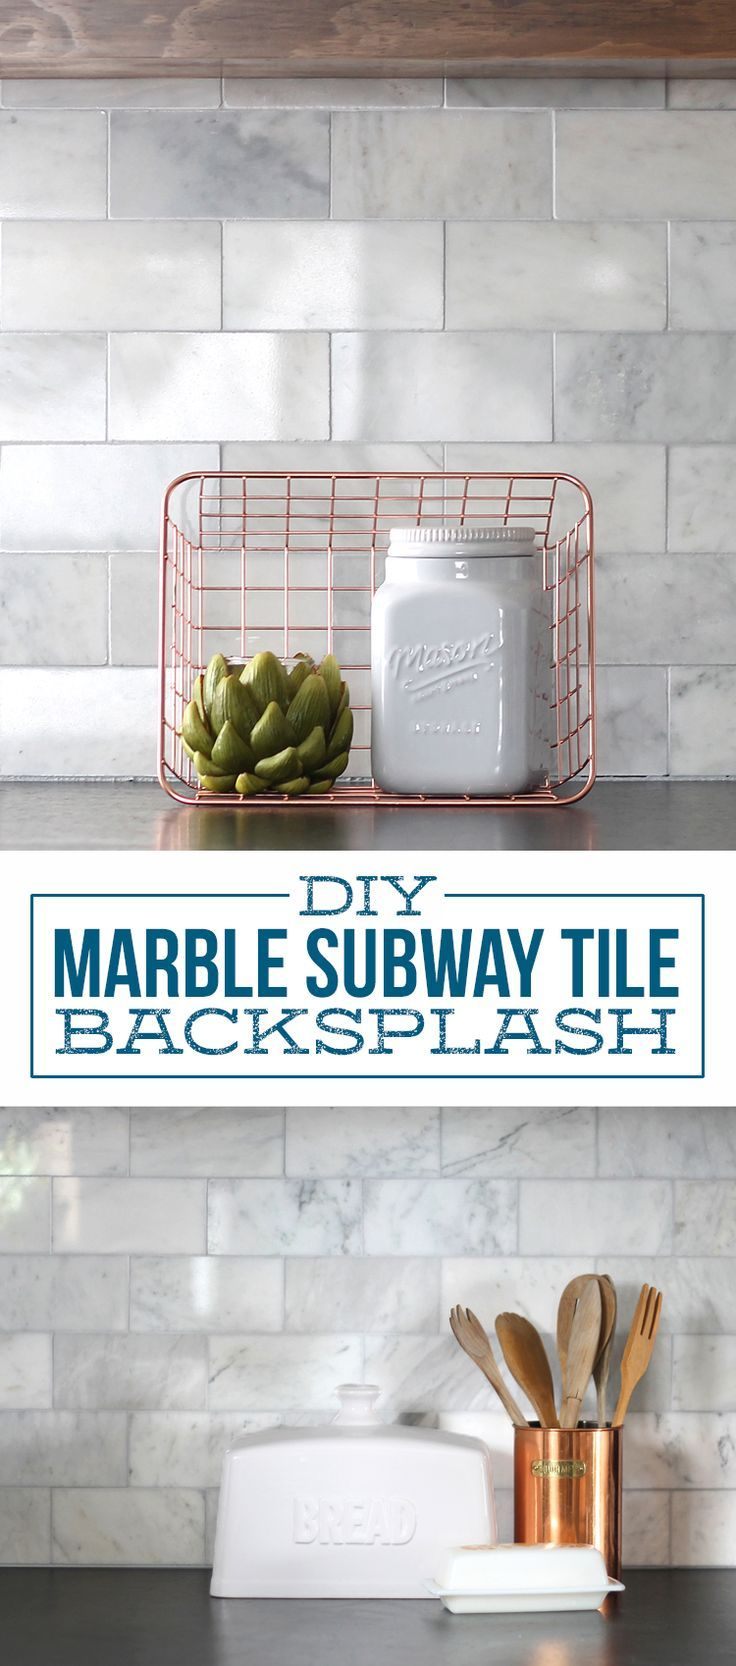 - DIY Marble Subway Tile Backsplash: Tips, Tricks And What NOT To Do